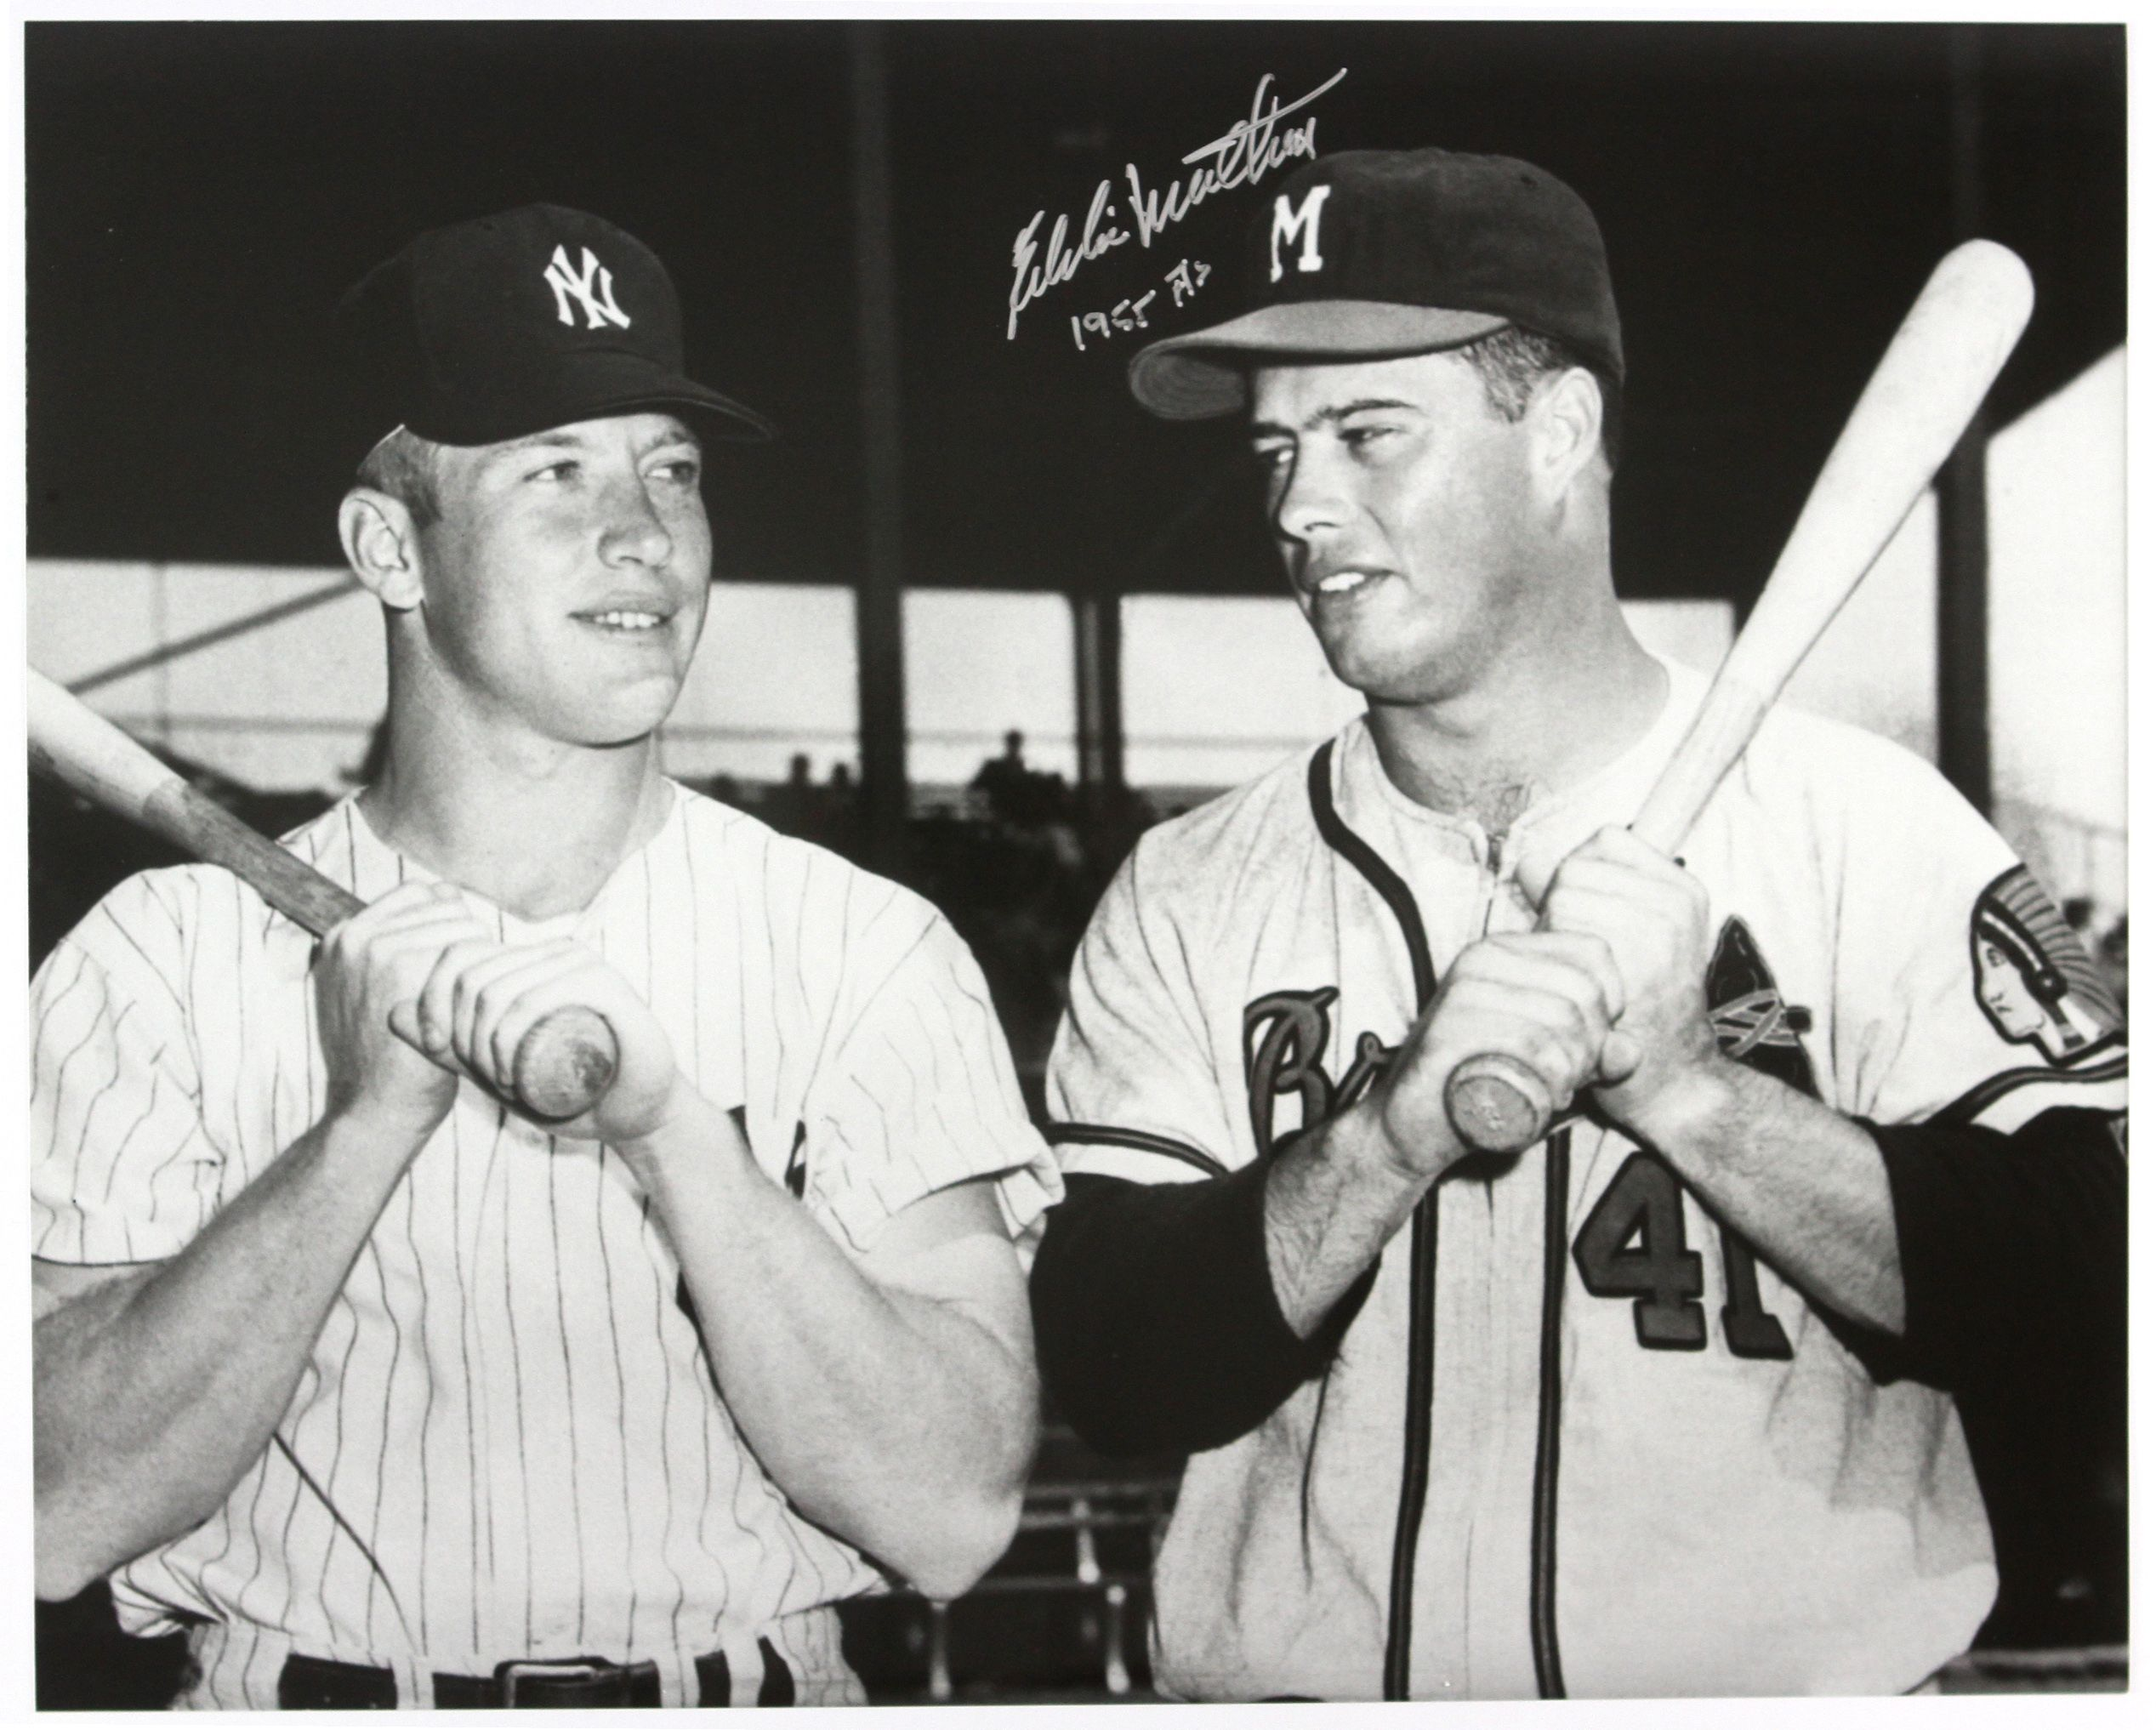 1955 Eddie Mathews Milwaukee Braves W Mickey Mantle At The All Star Game County